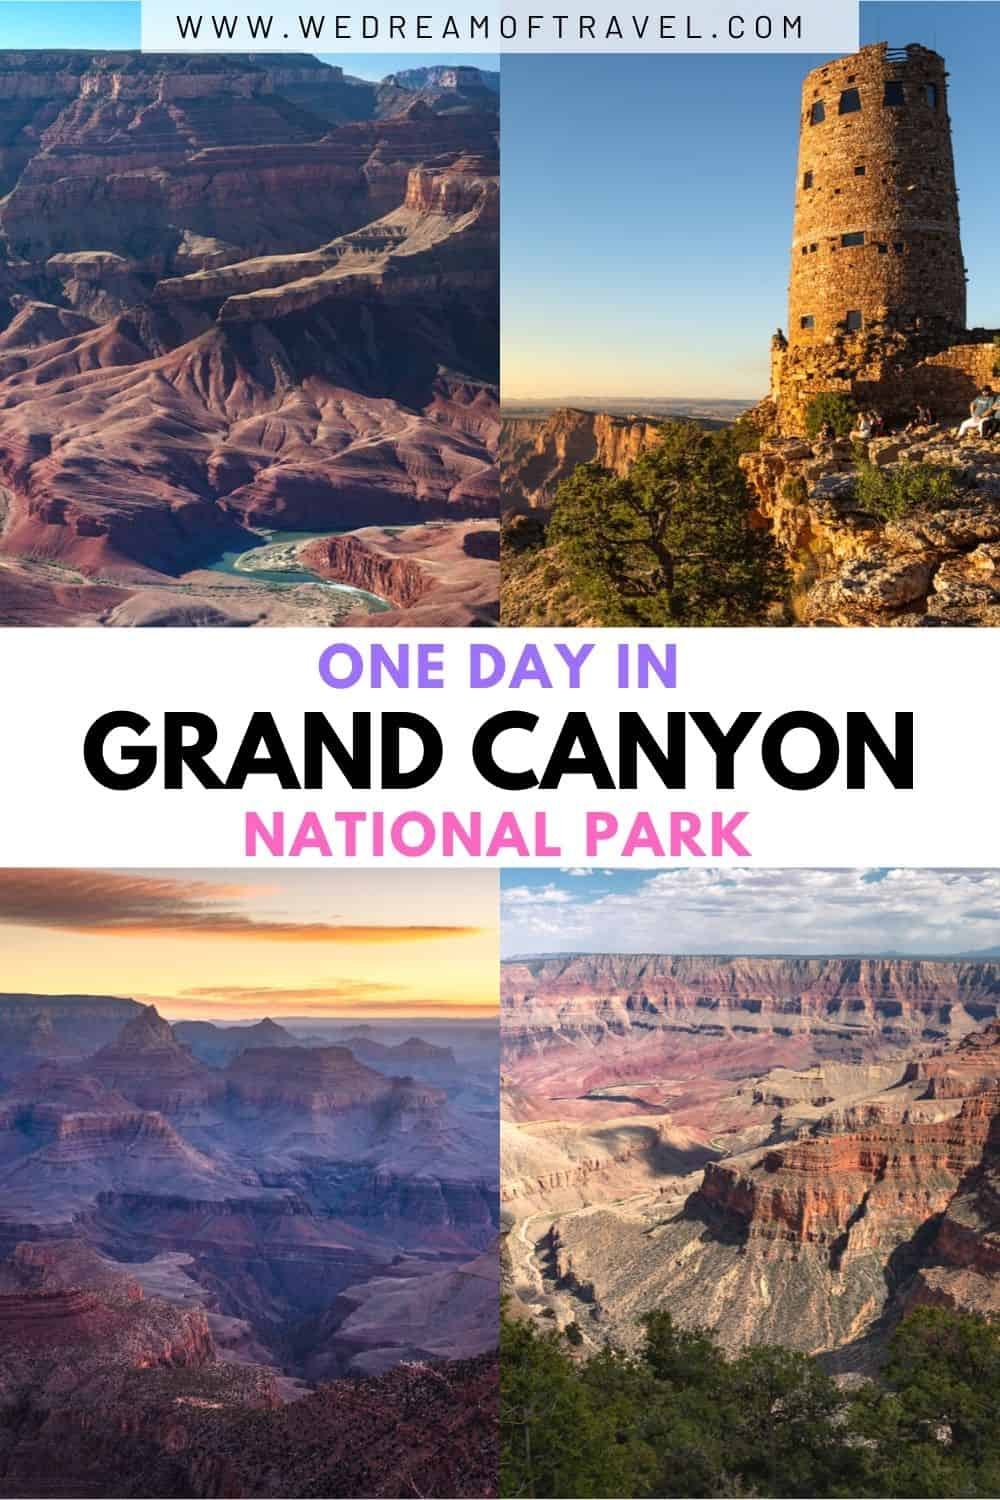 From sunrise to sunset, discover the most rewarding way to spend one day in Grand Canyon with this perfect day trip itinerary.  Including all the best things to do in one day in the Grand Canyon, plus helpful tips and a map.